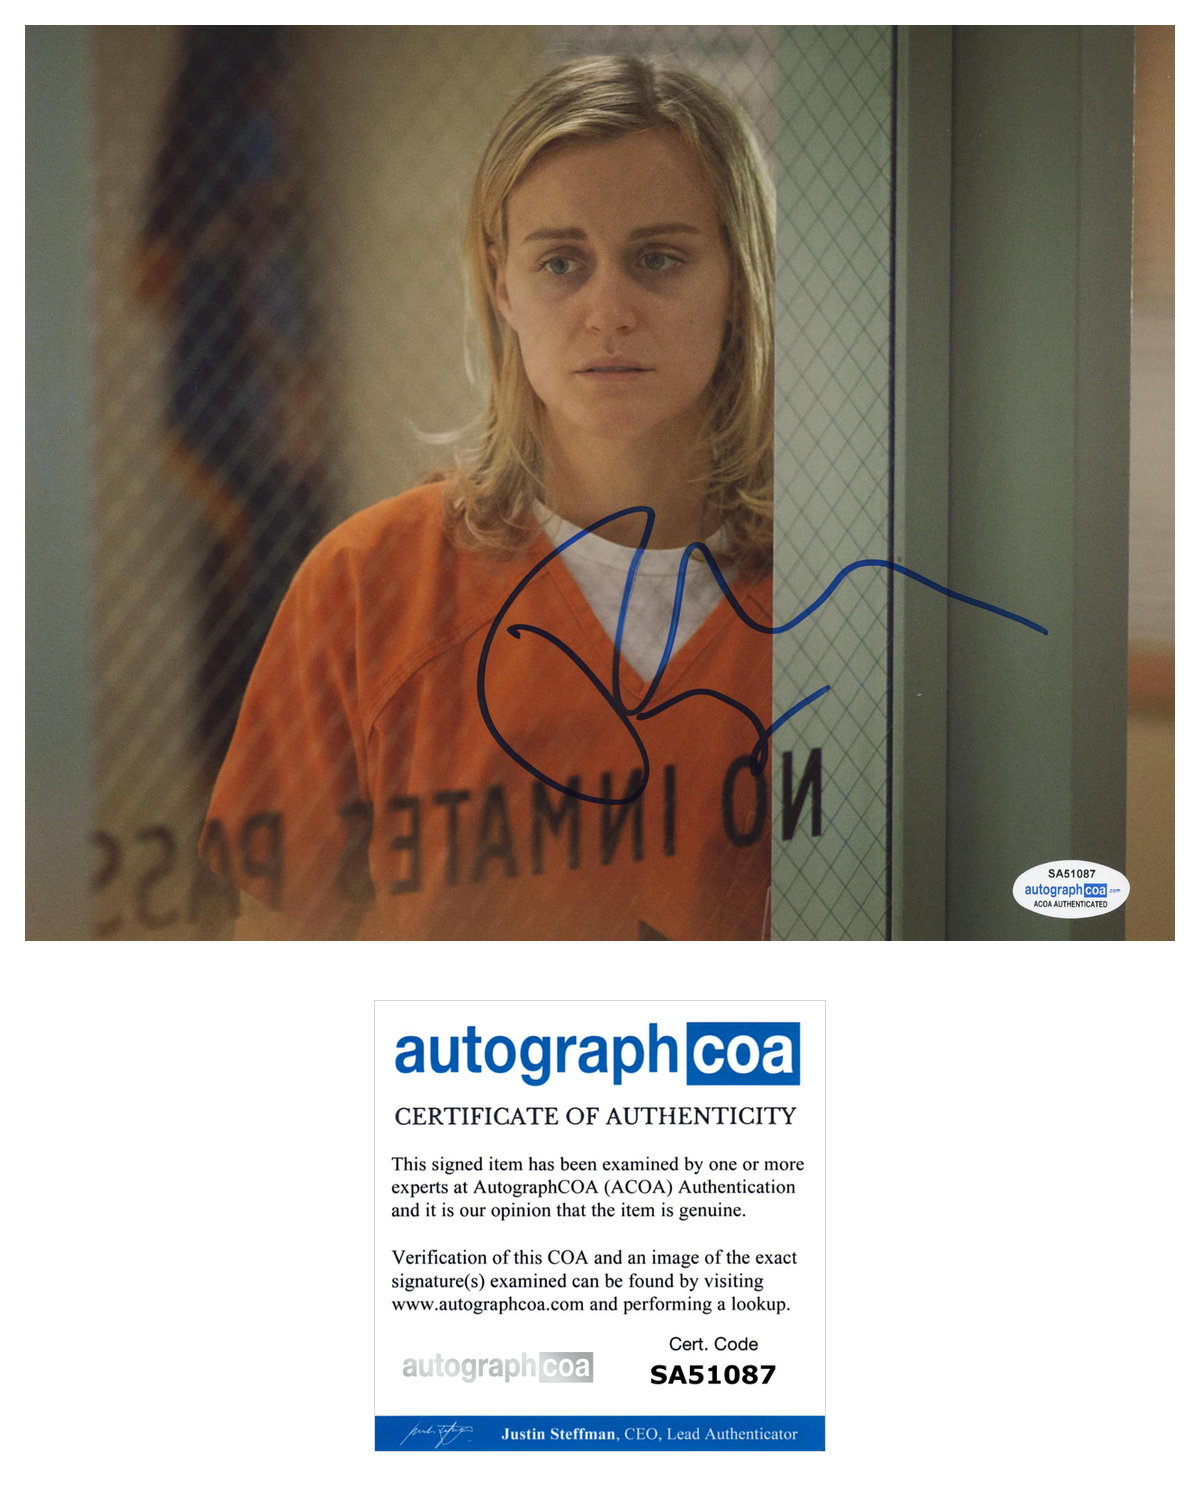 Taylor Schilling Orange is the New Black Signed Autograph